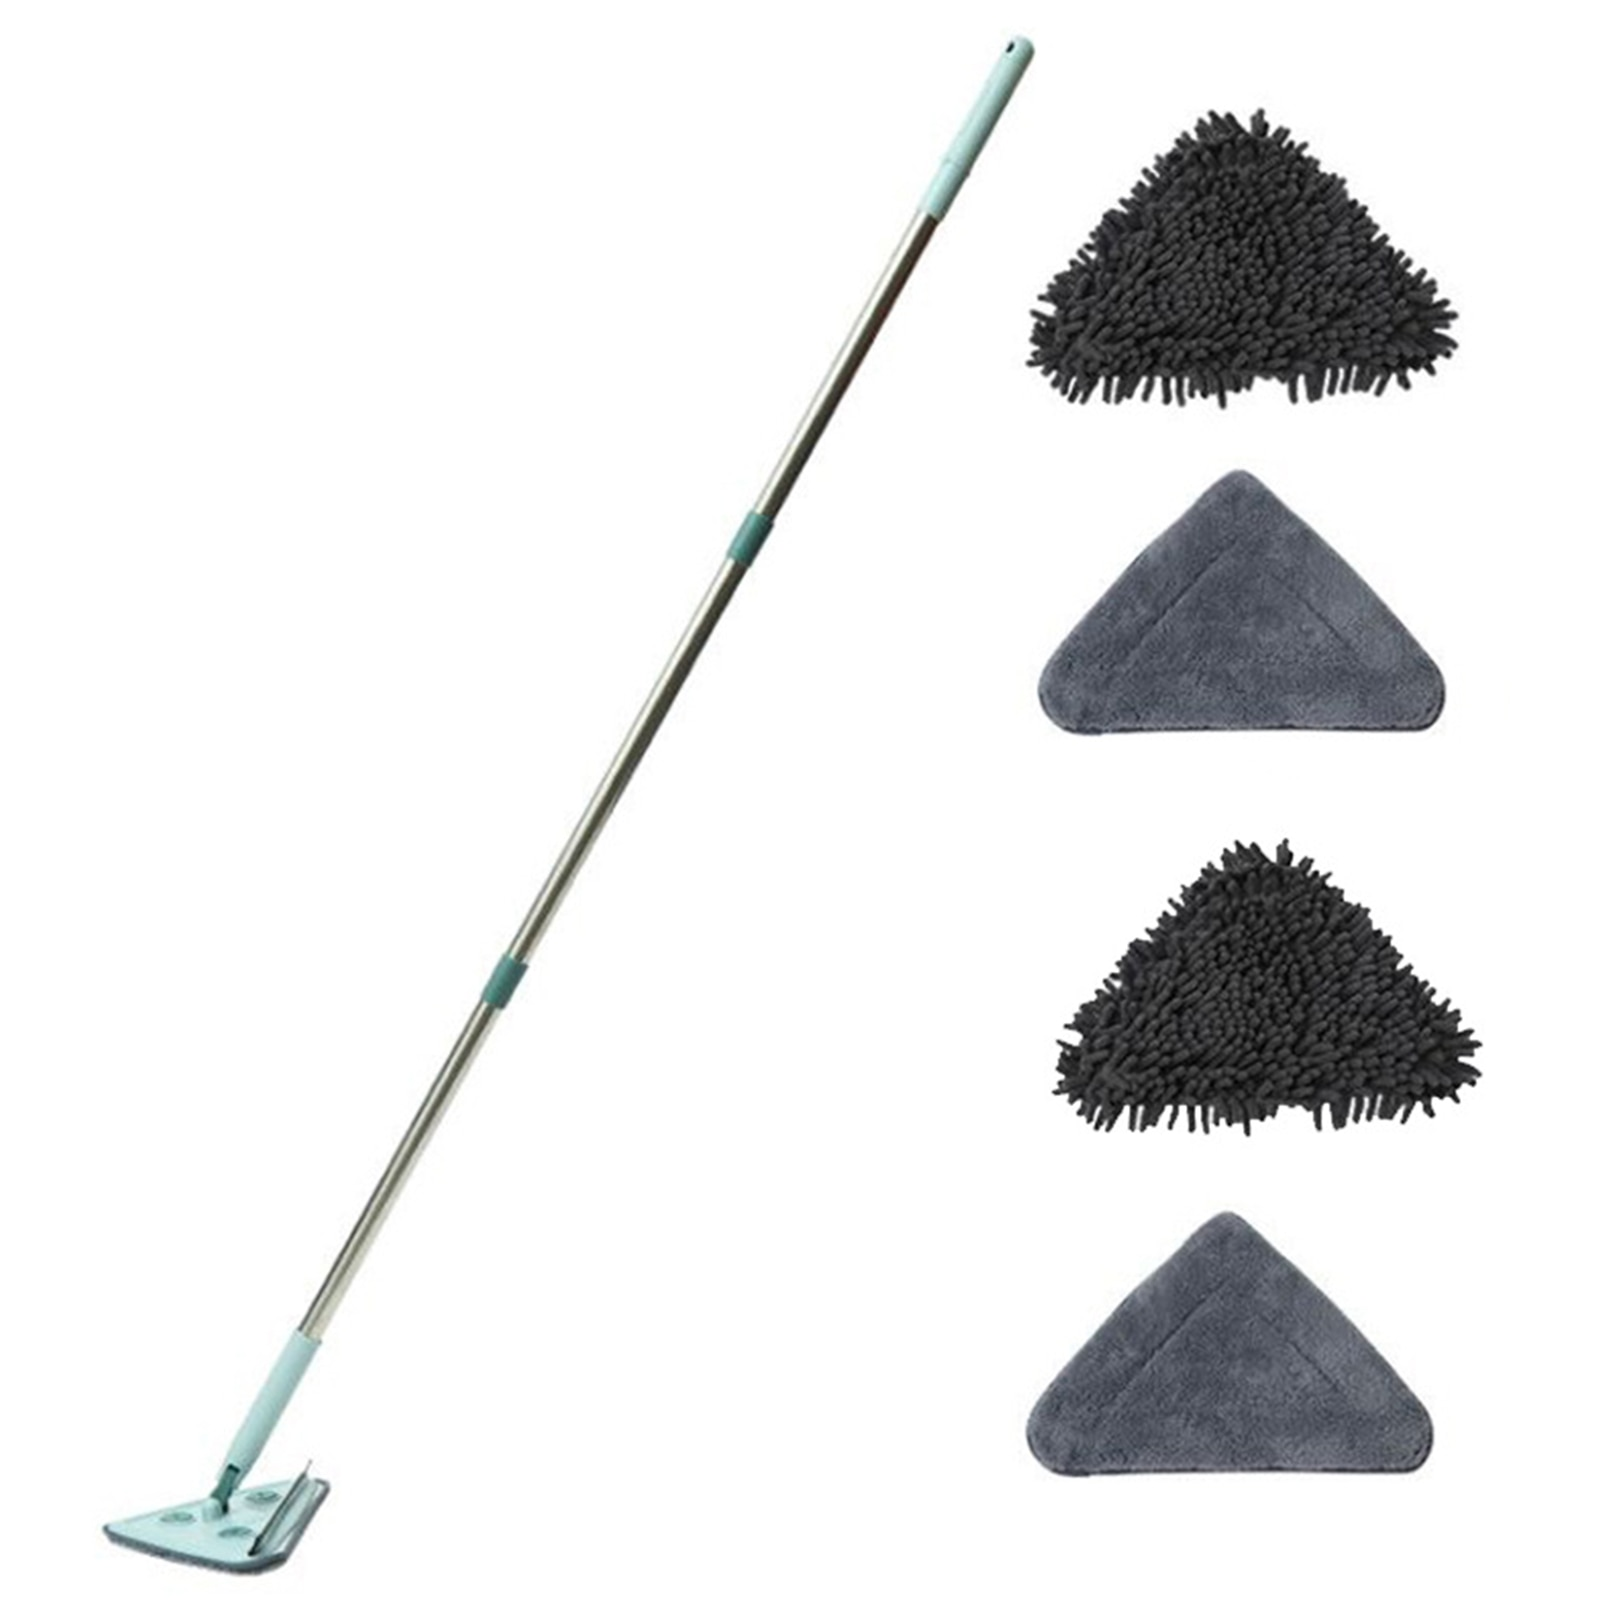 метелка для пыли boomjoy dust mop 68 86 см Window Car Adjustable Cleaning Mop With Replacement Cloth Multifunctional Triangle Mop Lazy Dust Mop Household Dusting Mop